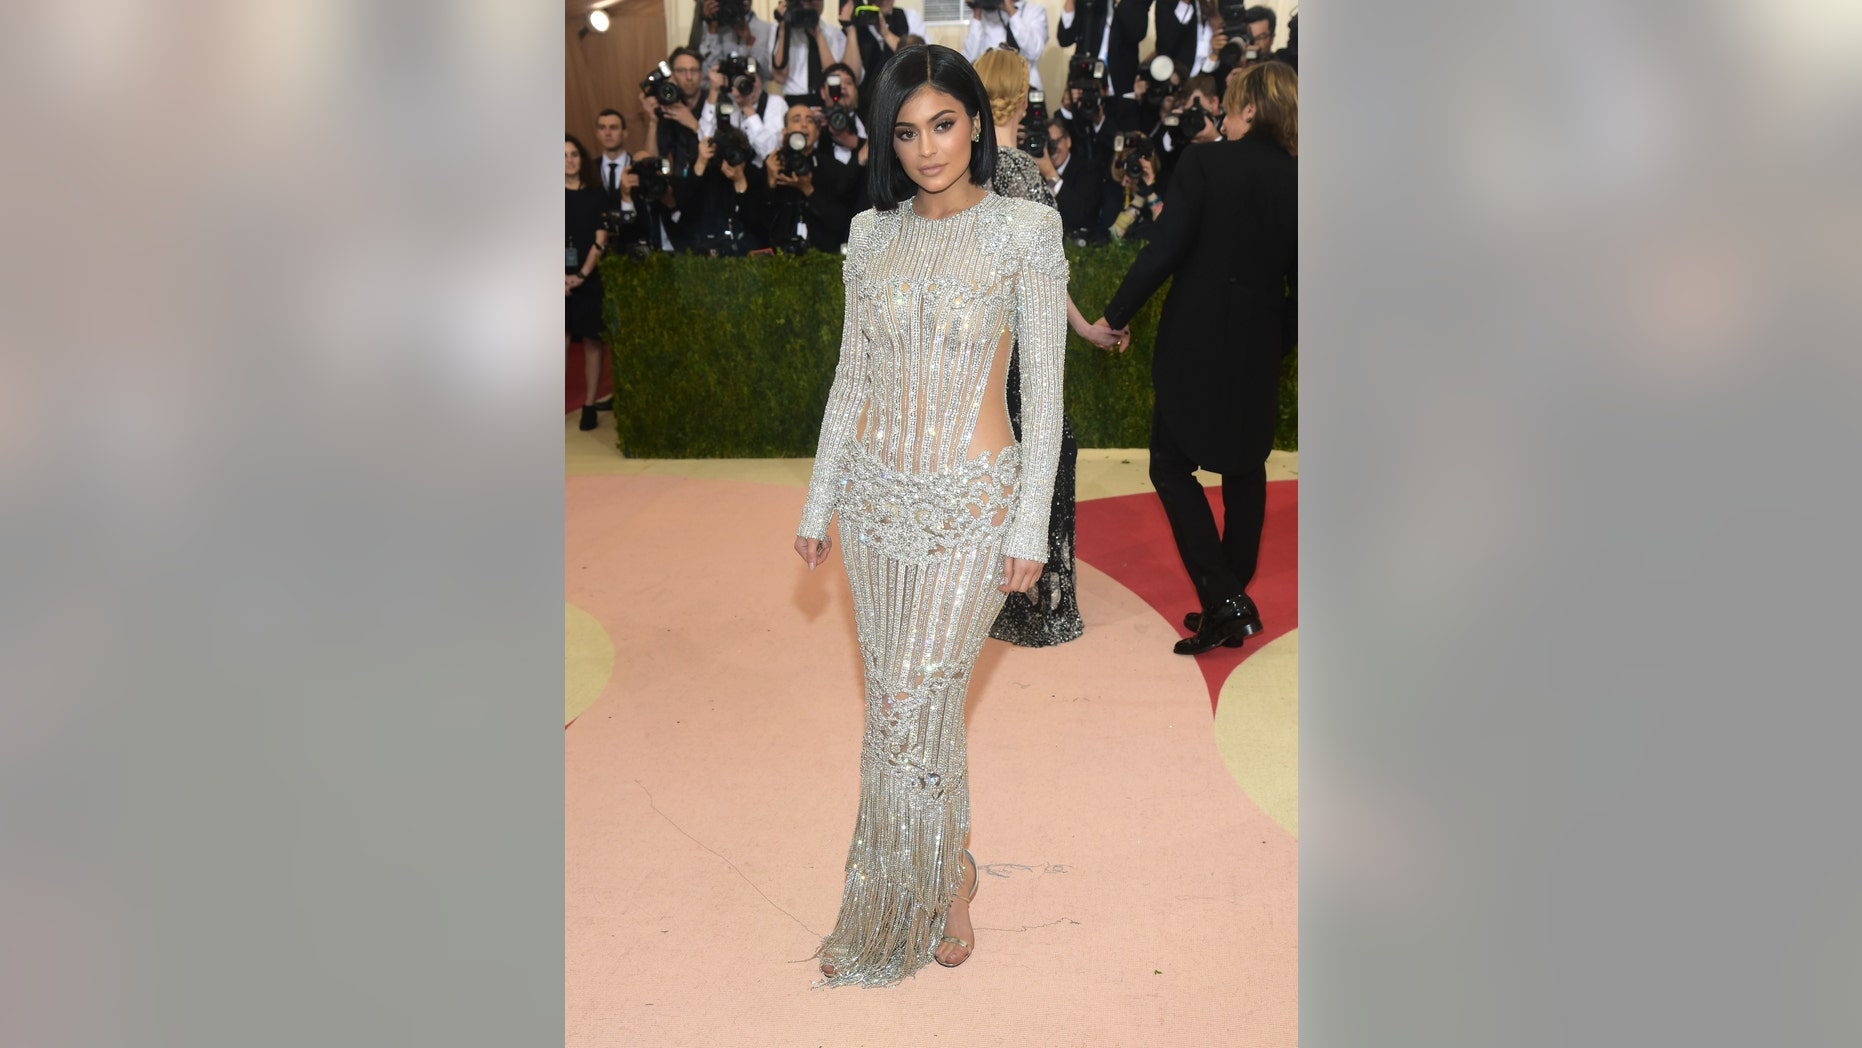 """Kylie Jenner arrives at The Metropolitan Museum of Art Costume Institute Benefit Gala, celebrating the opening of """"Manus x Machina: Fashion in an Age of Technology"""" on Monday, May 2, 2016, in New York."""